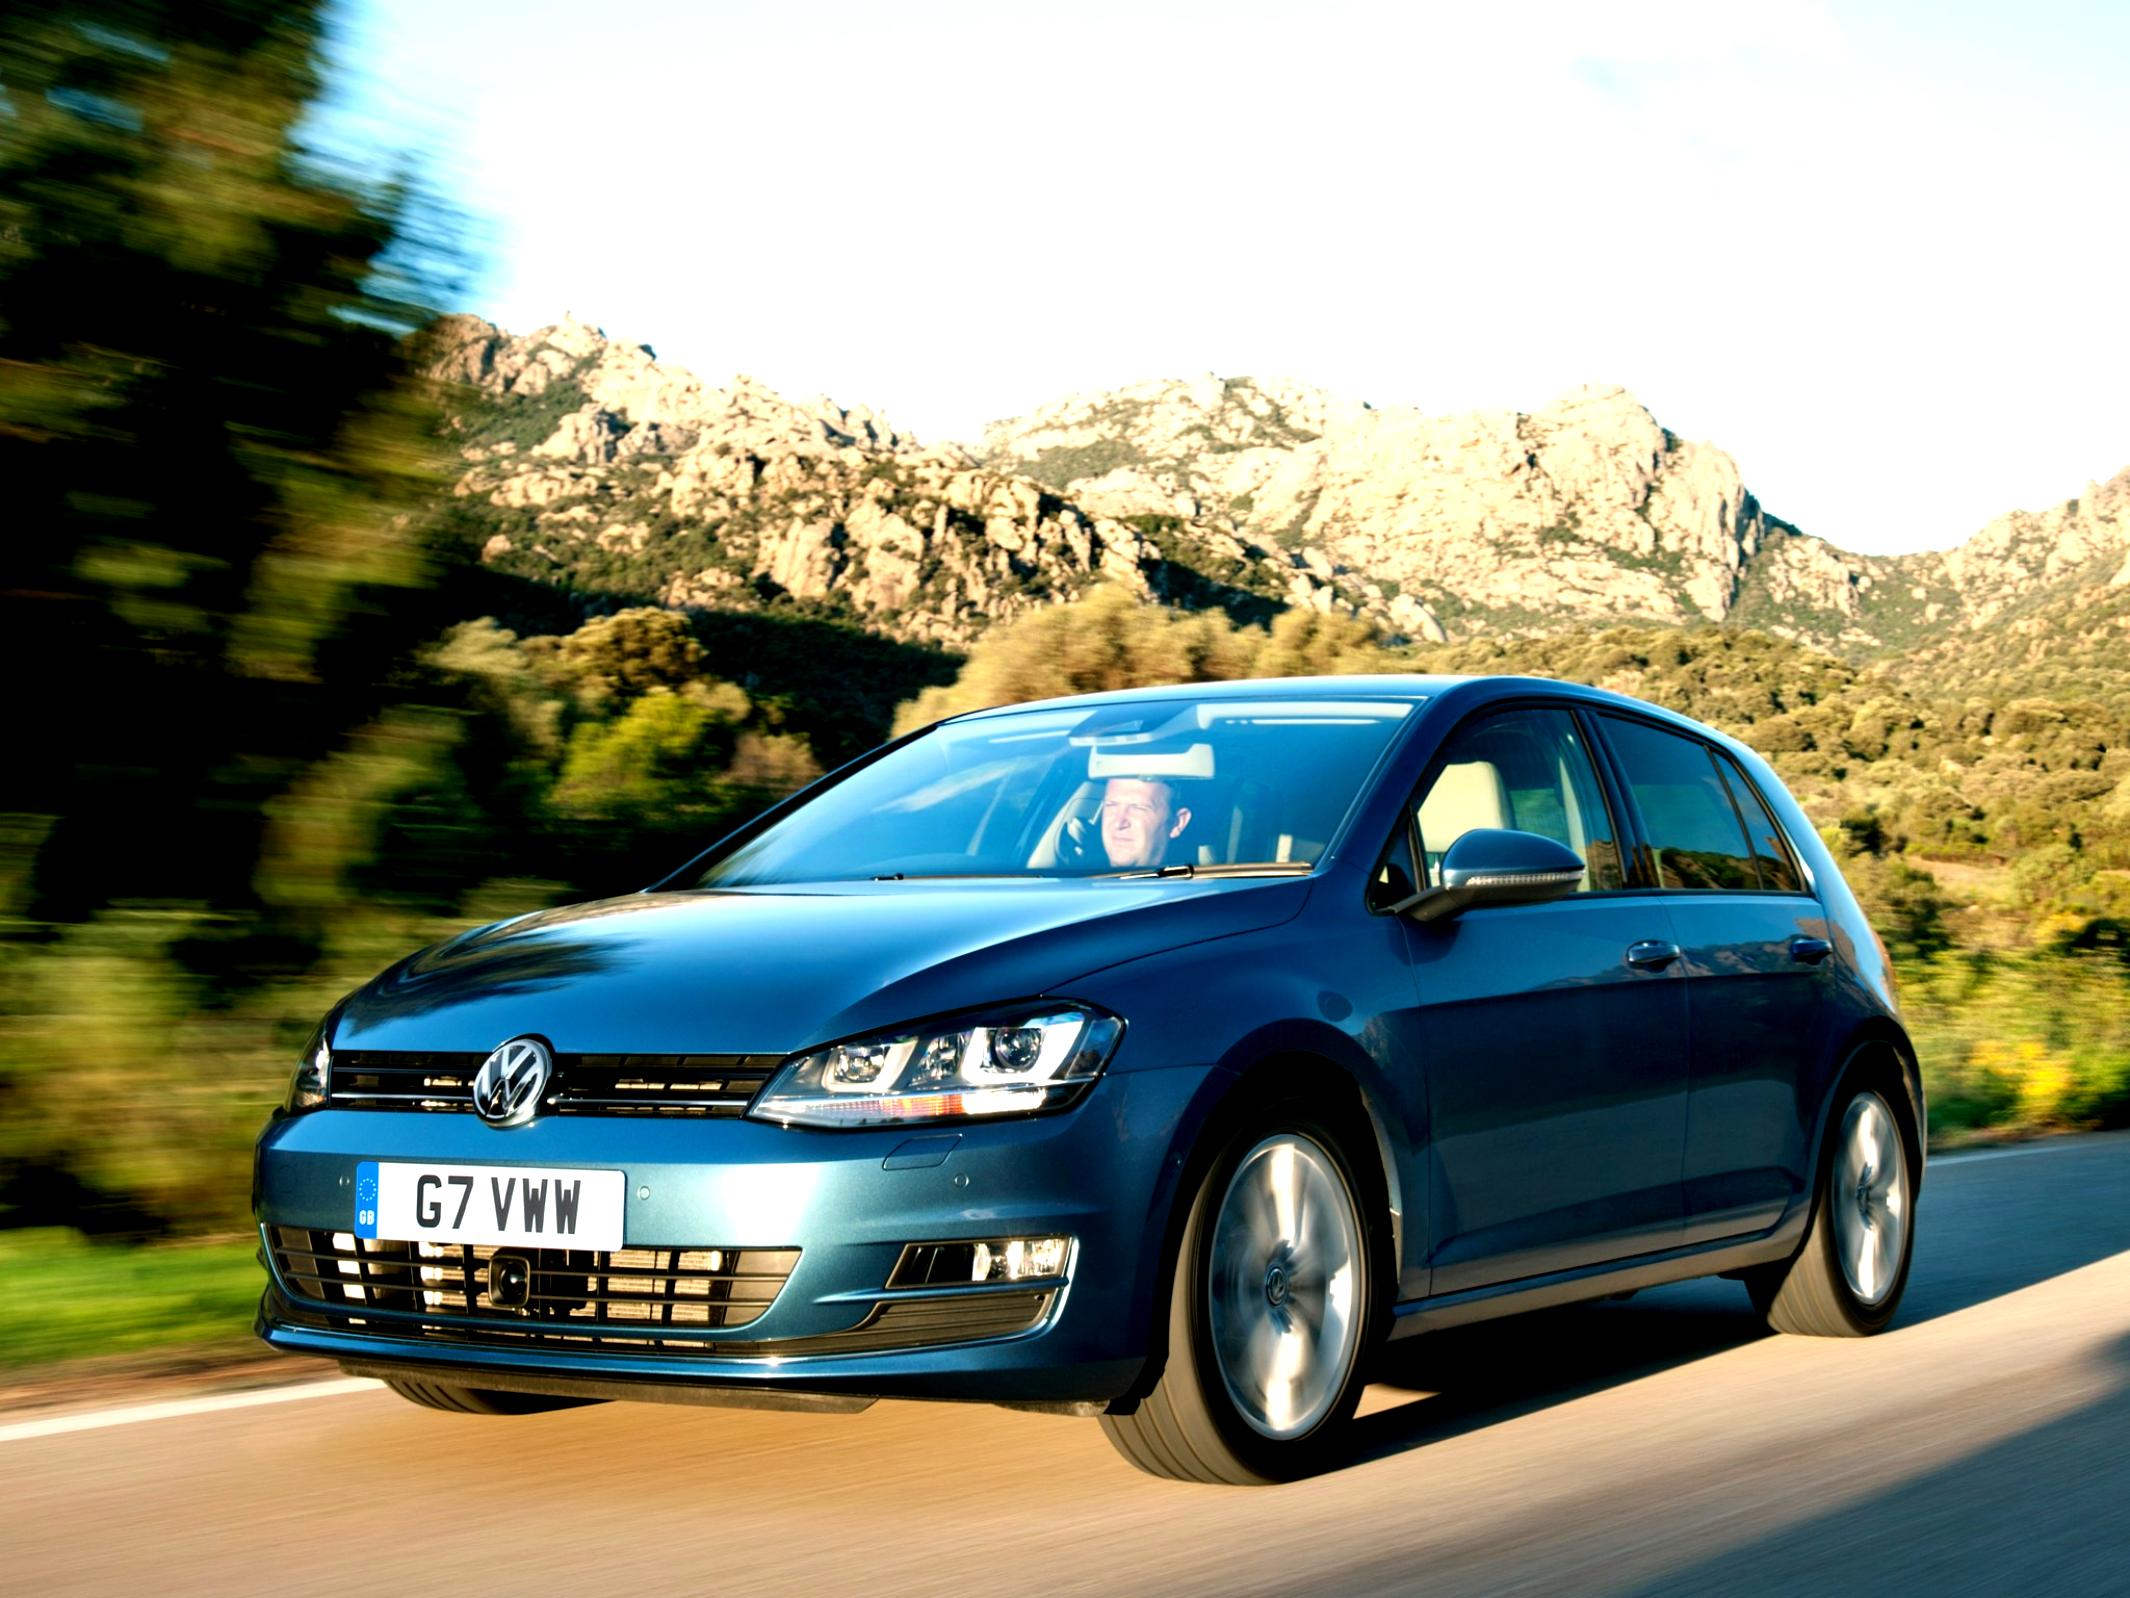 Volkswagen Golf VII 5 Doors 2012 #47